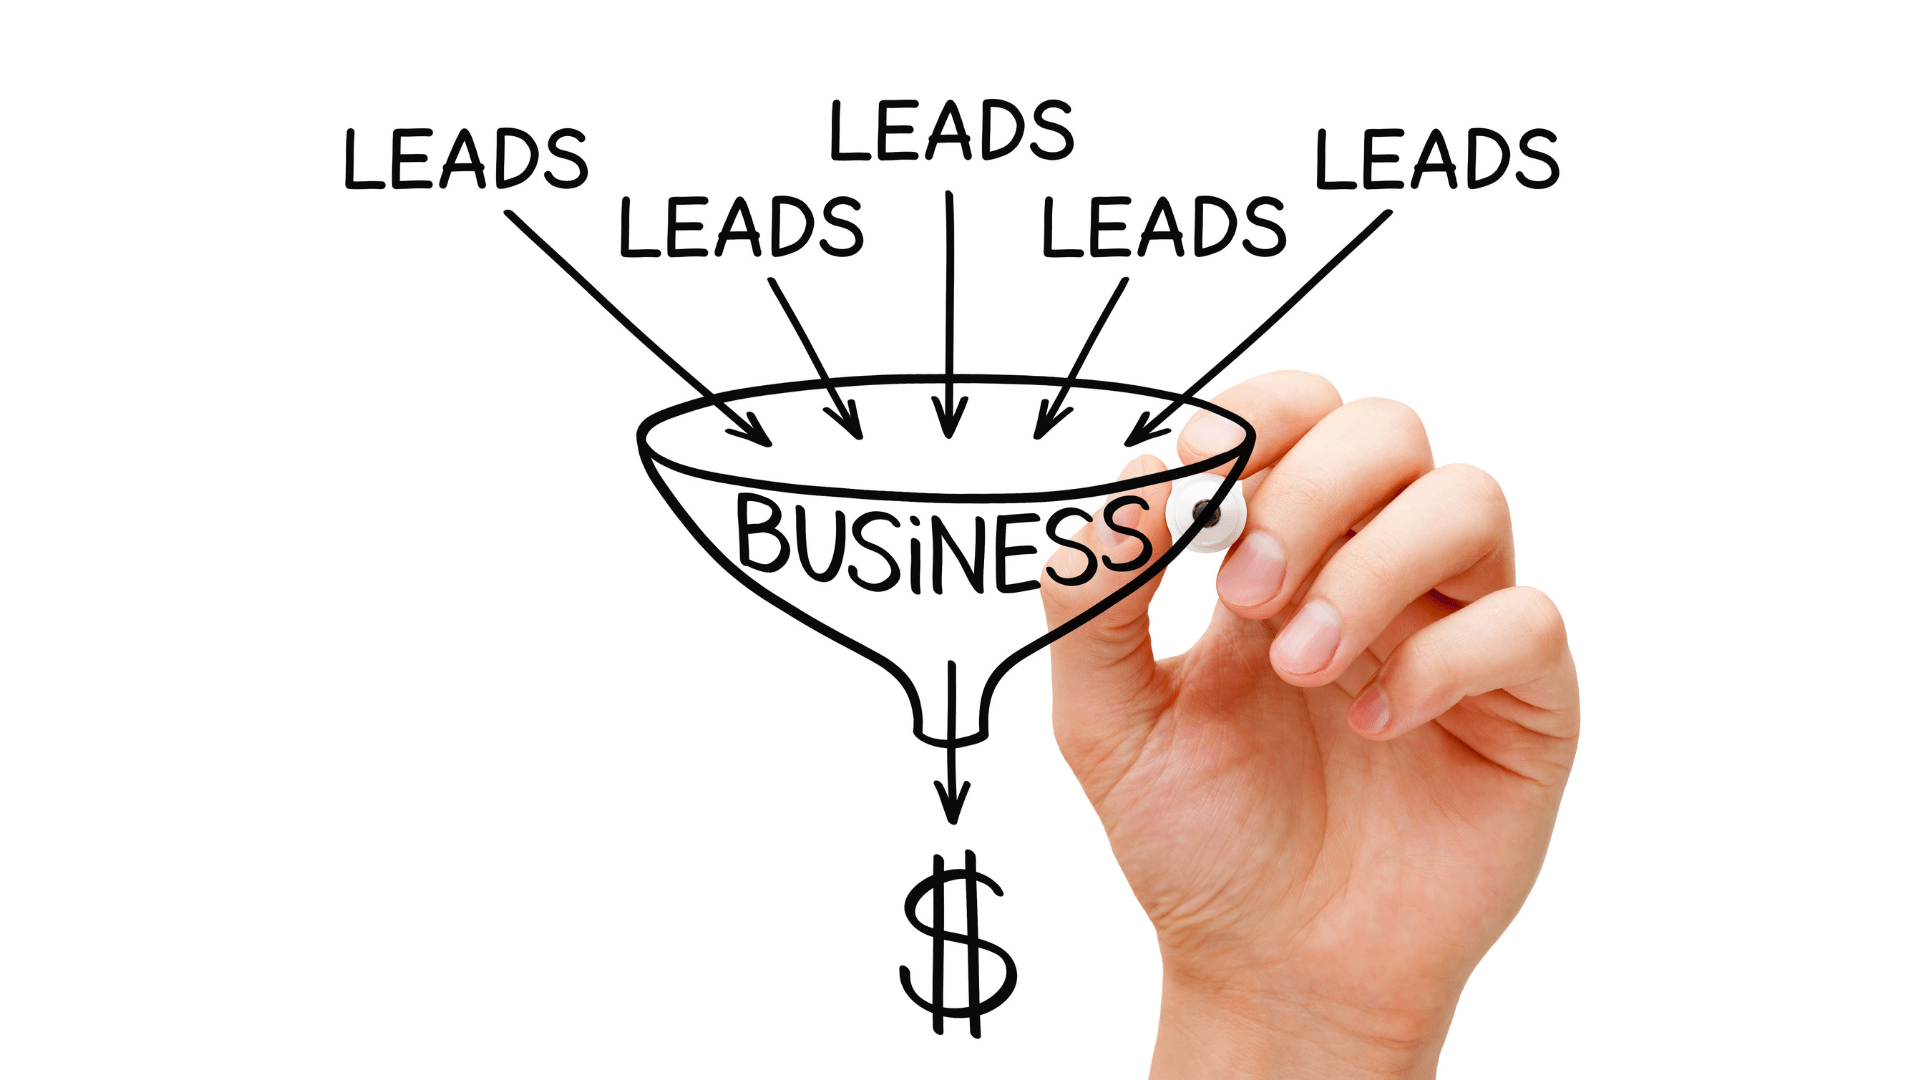 lead generation for businesses and teams